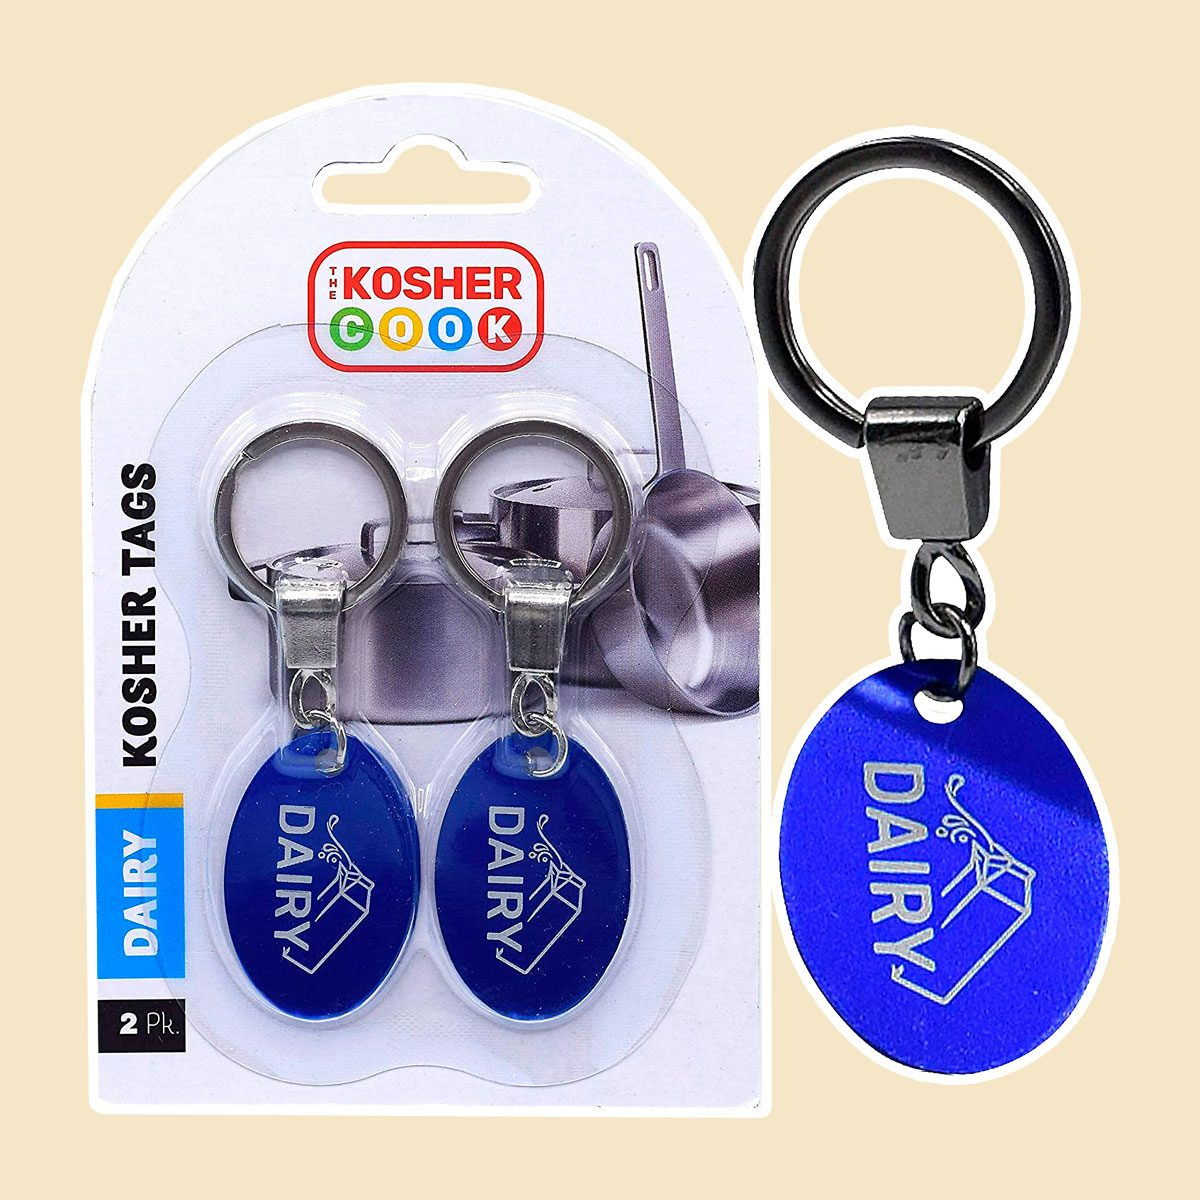 The Kosher Cook Dairy Blue Key Rings